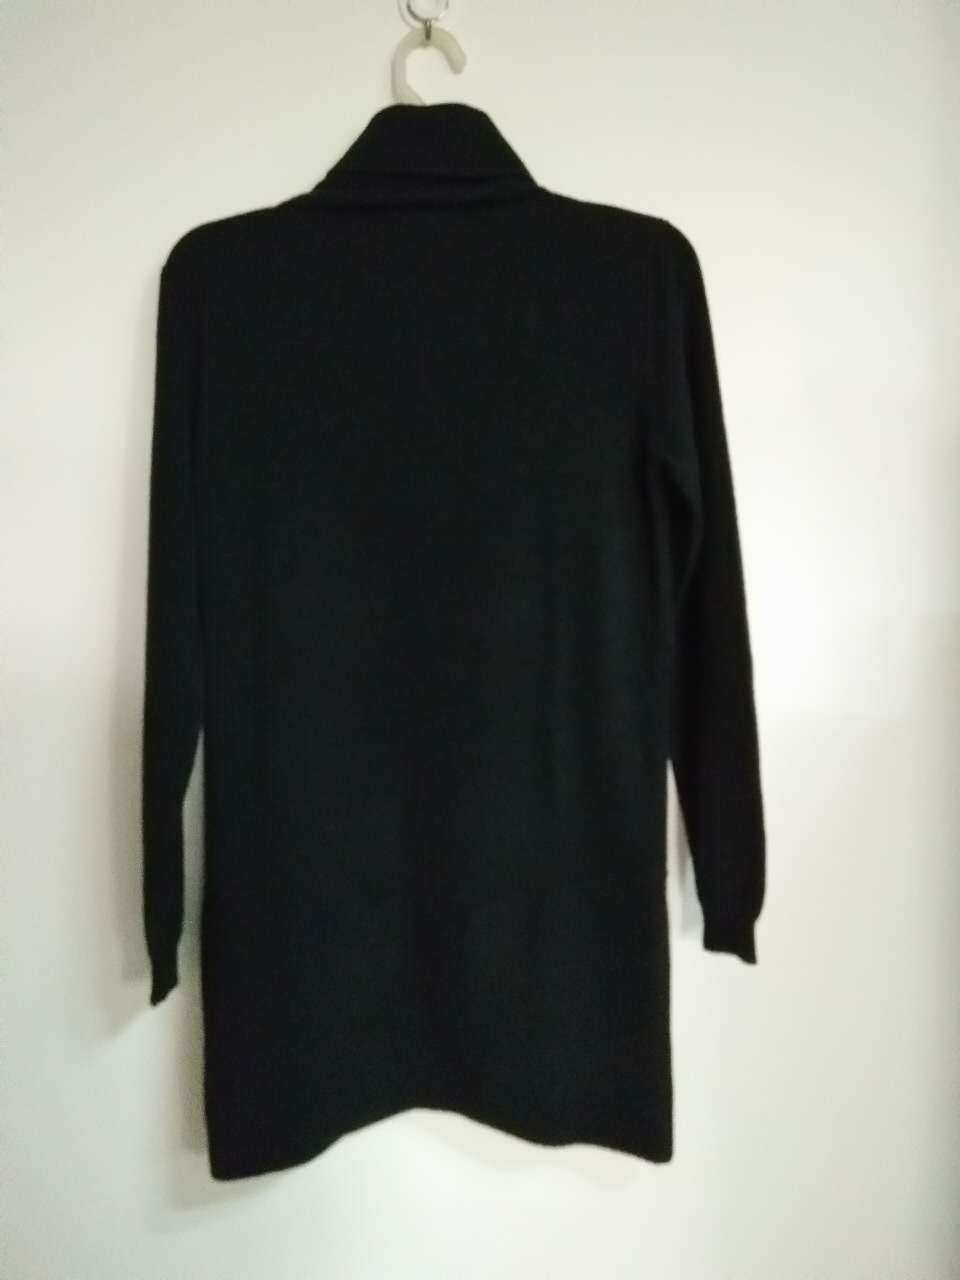 Trj016, 100%Cashmere, Black, Women&Lady, Good Quality, Sweater